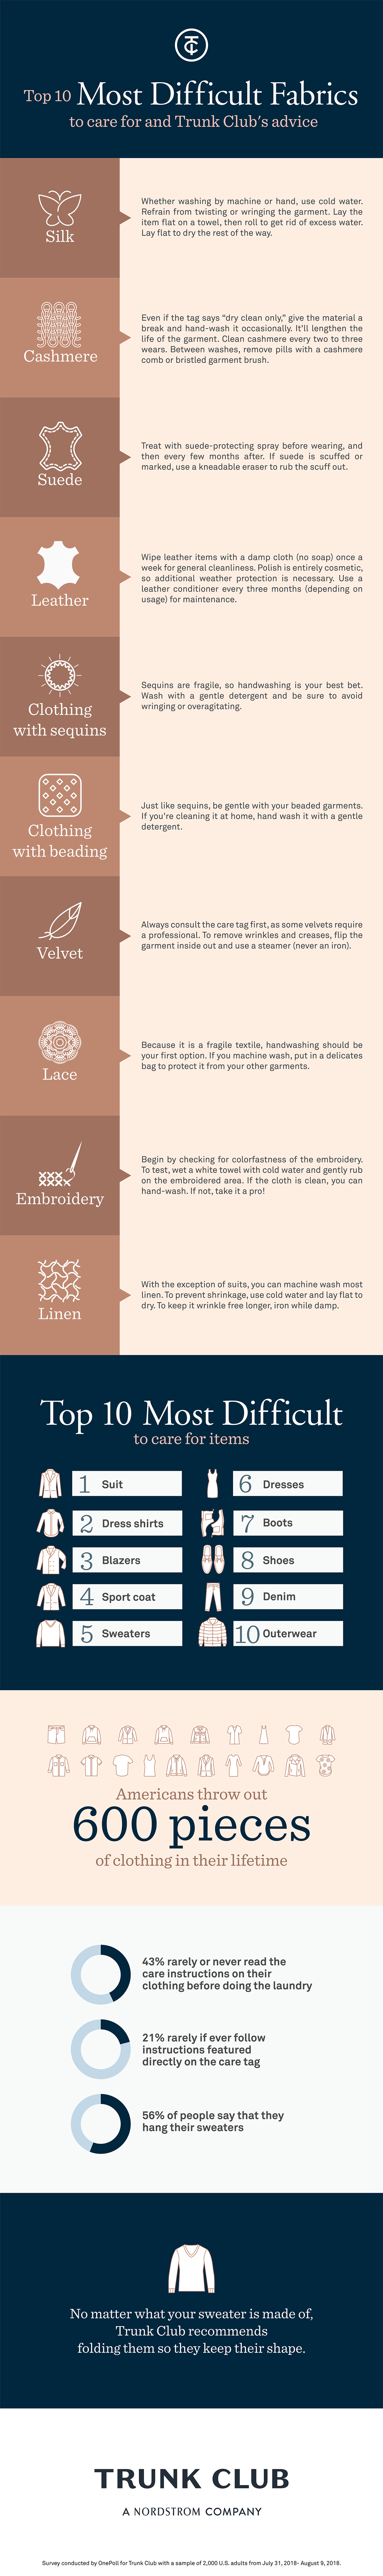 Most difficult fabrics V3.jpg